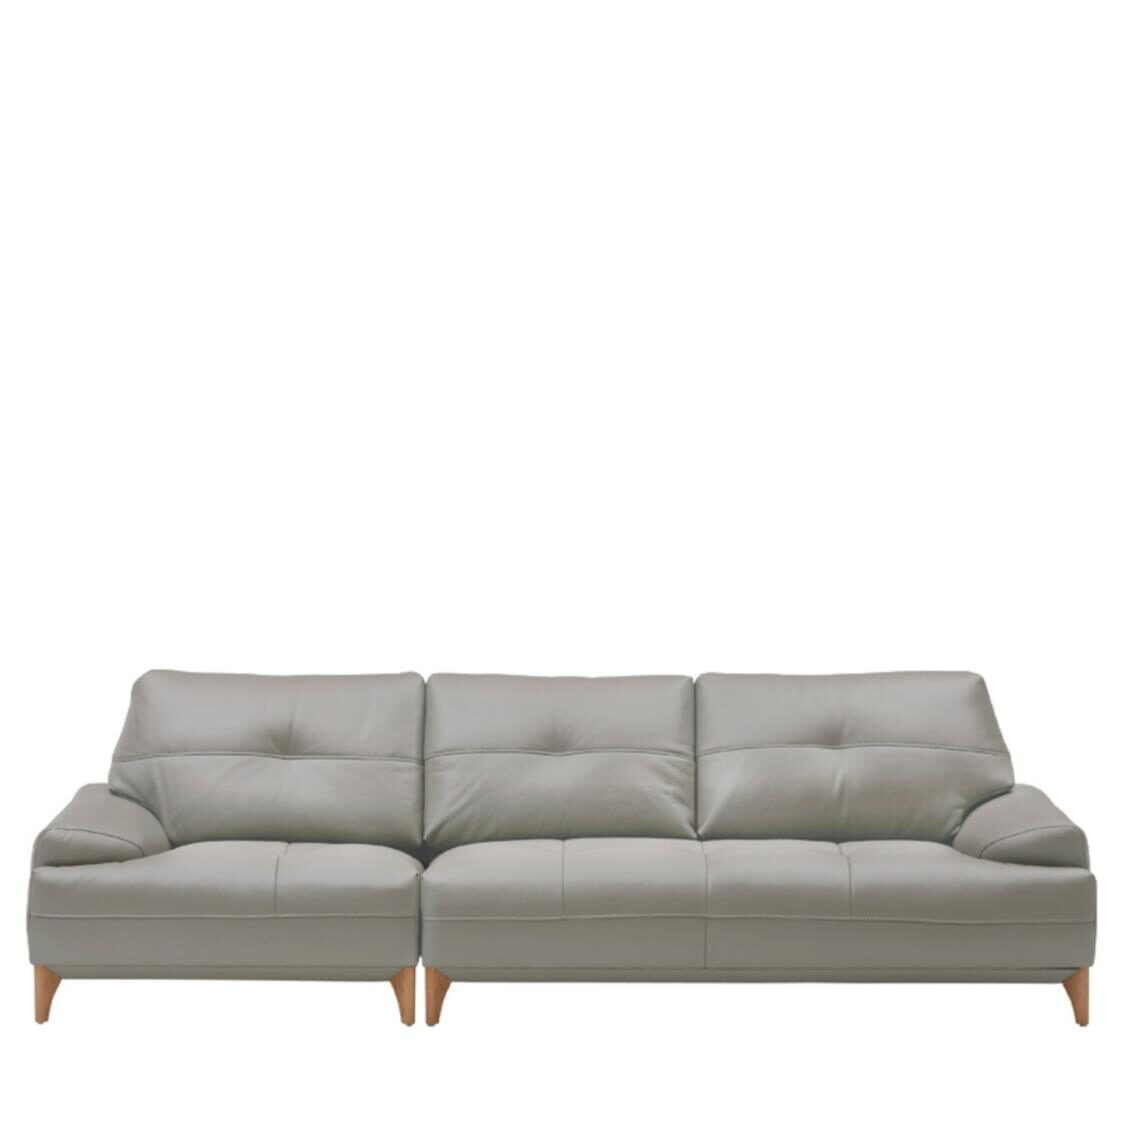 Boston Leather Sofa For 4  L391C Cloud